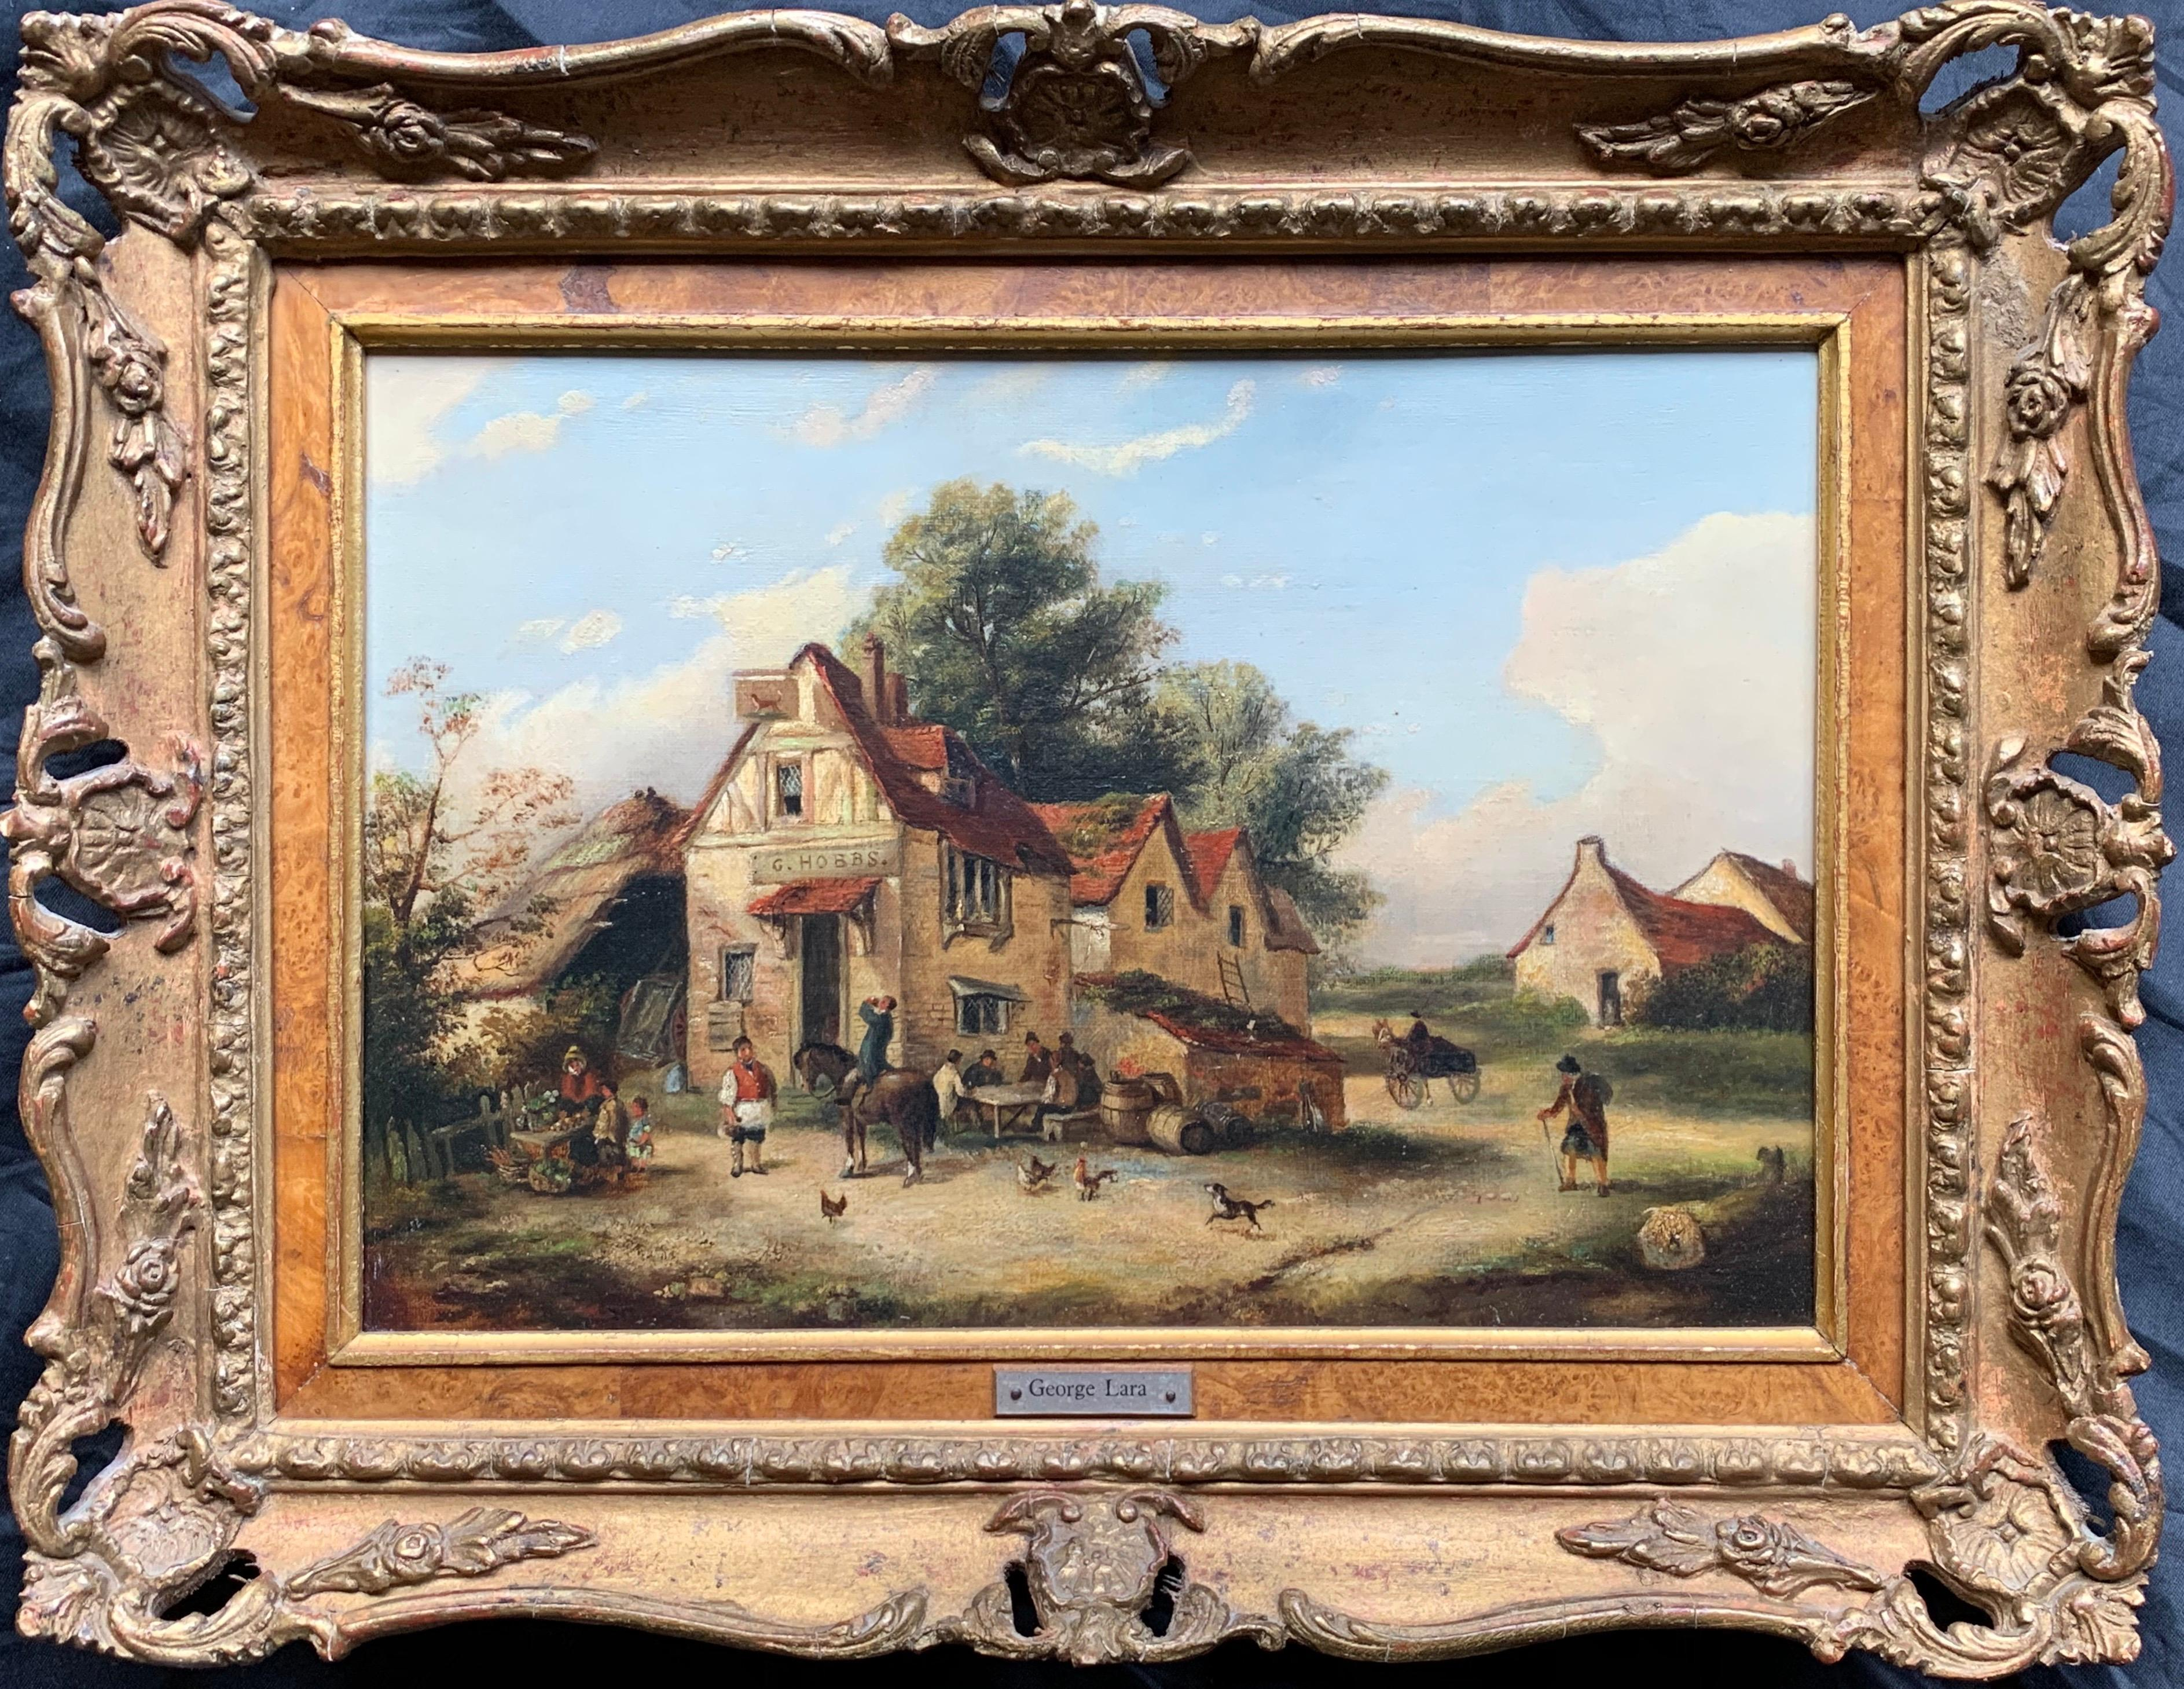 The Village Inn Victorian Oil Painting Gilt Framed Many Figures Chickens & Dog